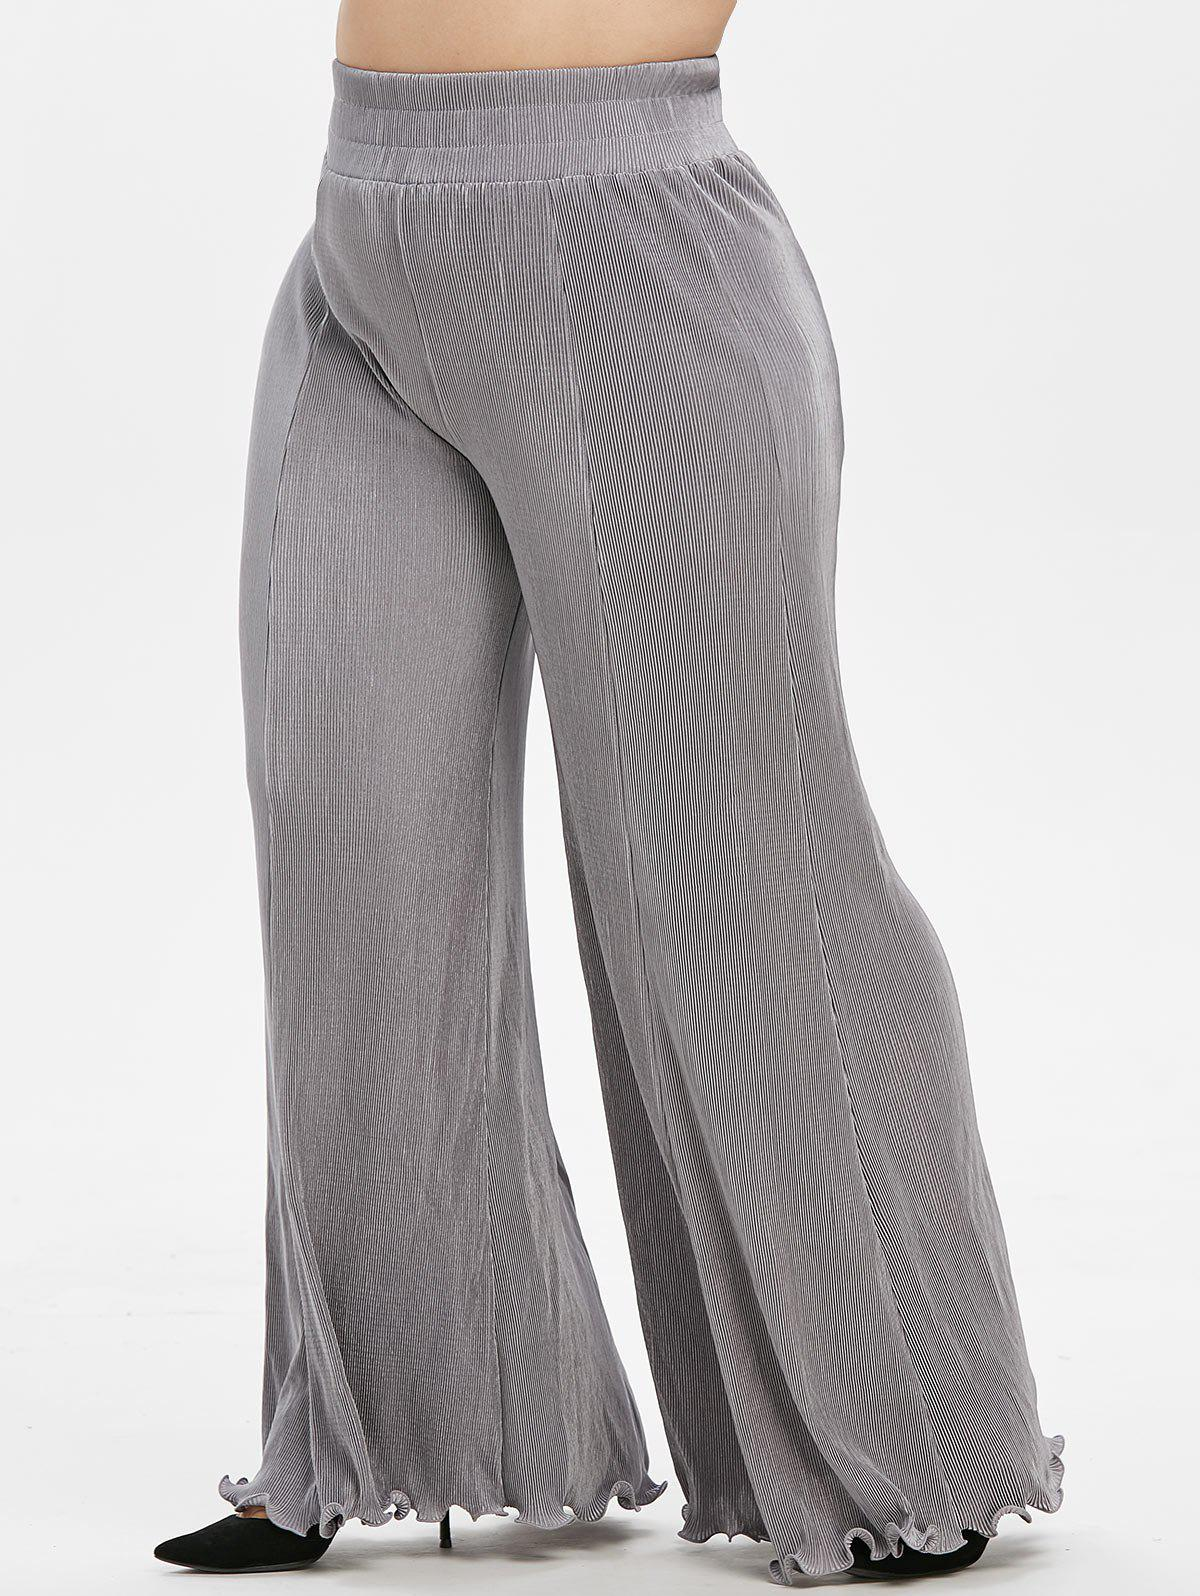 Plus Size High Rise Pleated Wide Leg Flare Pants - GRAY GOOSE 1X